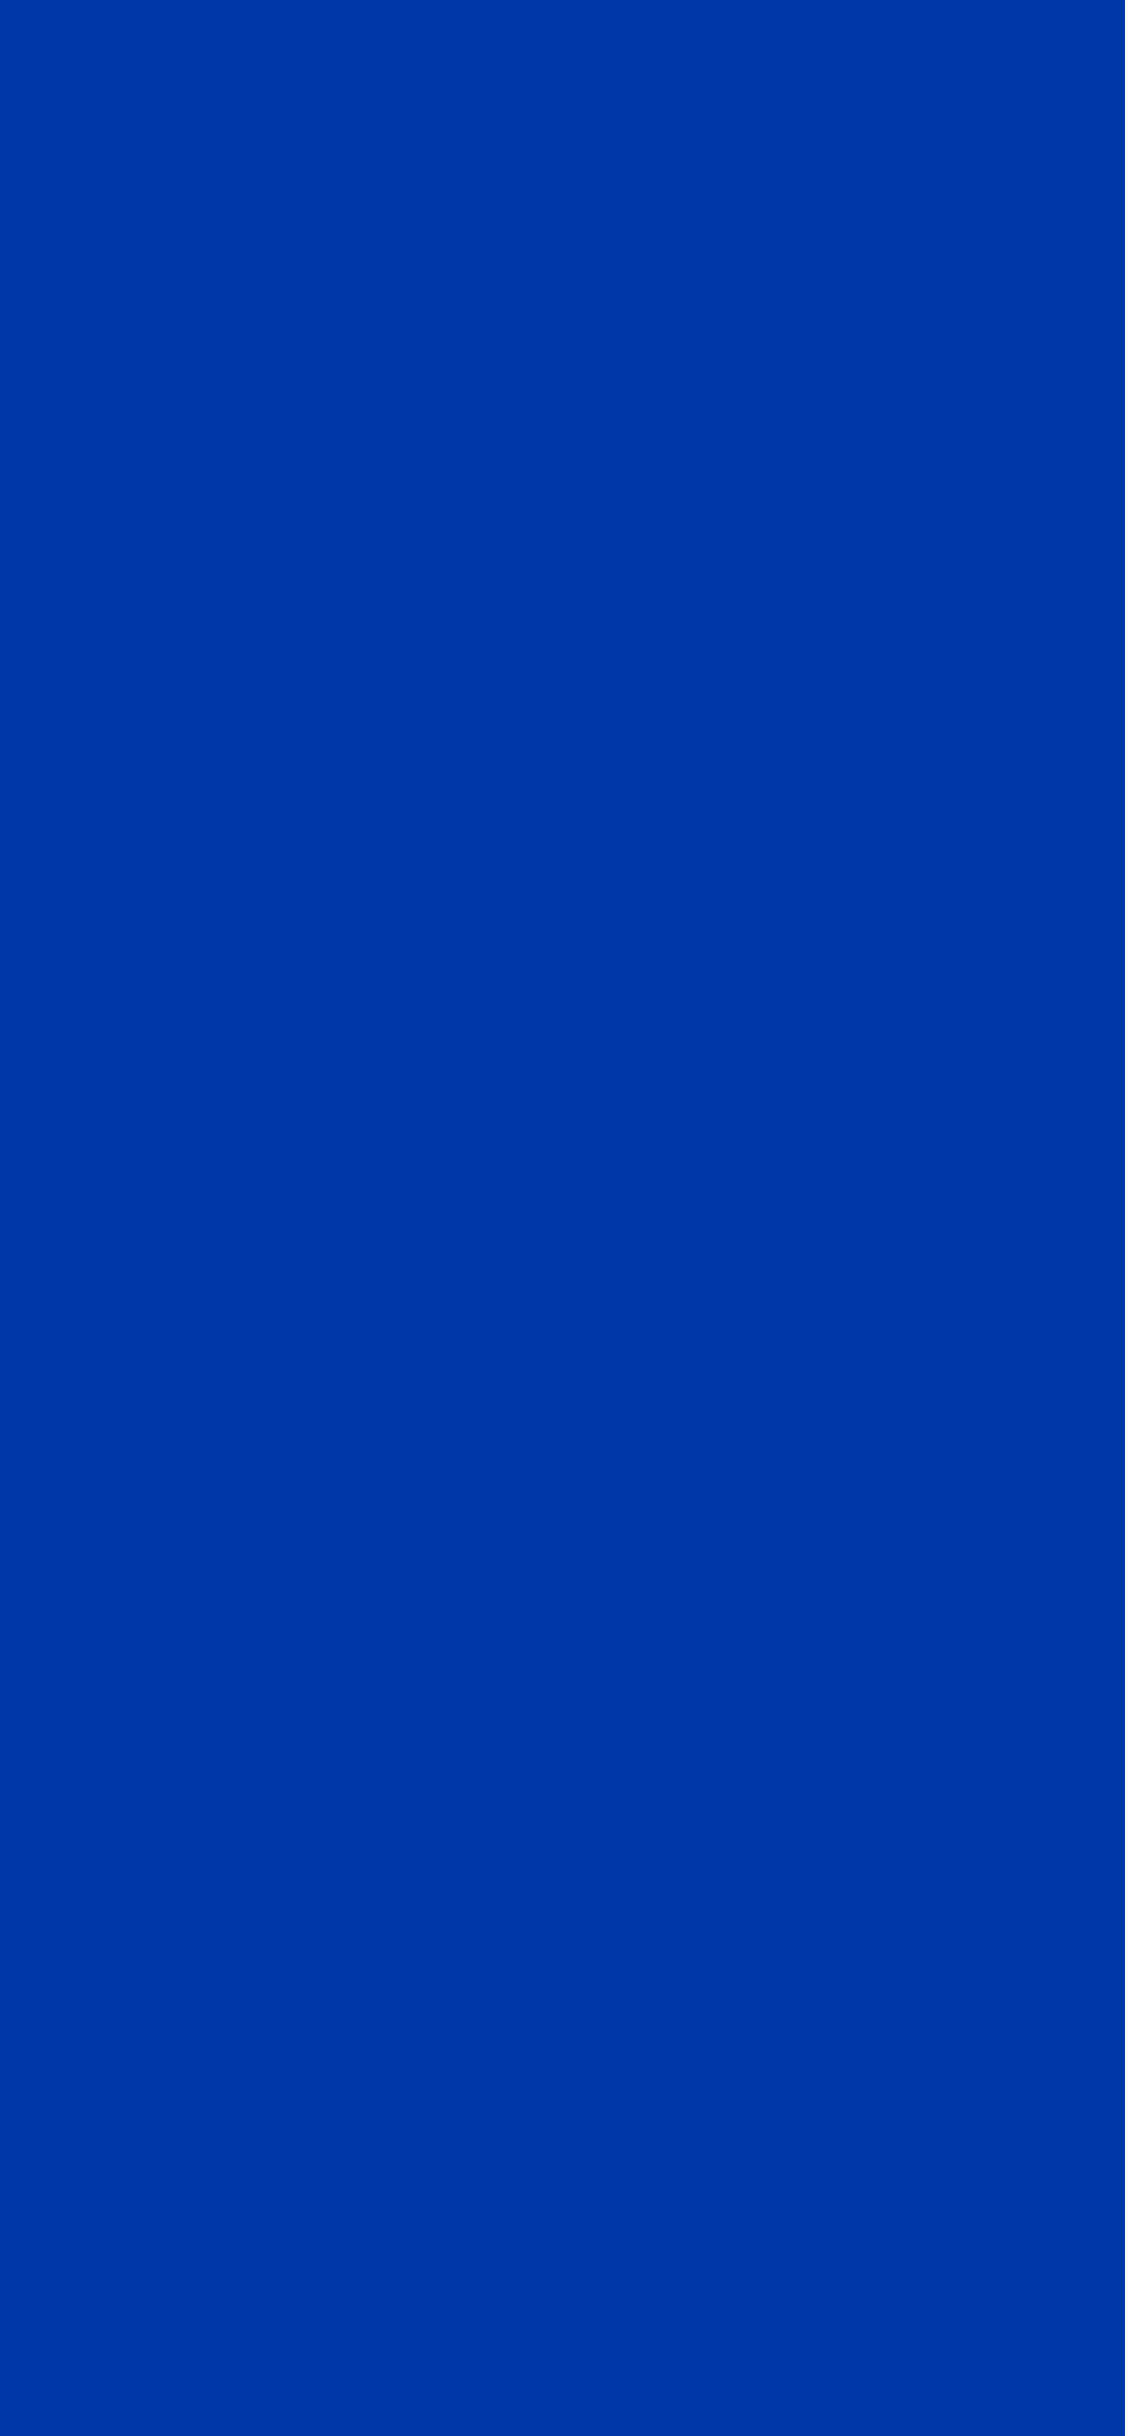 1125x2436 Royal Azure Solid Color Background